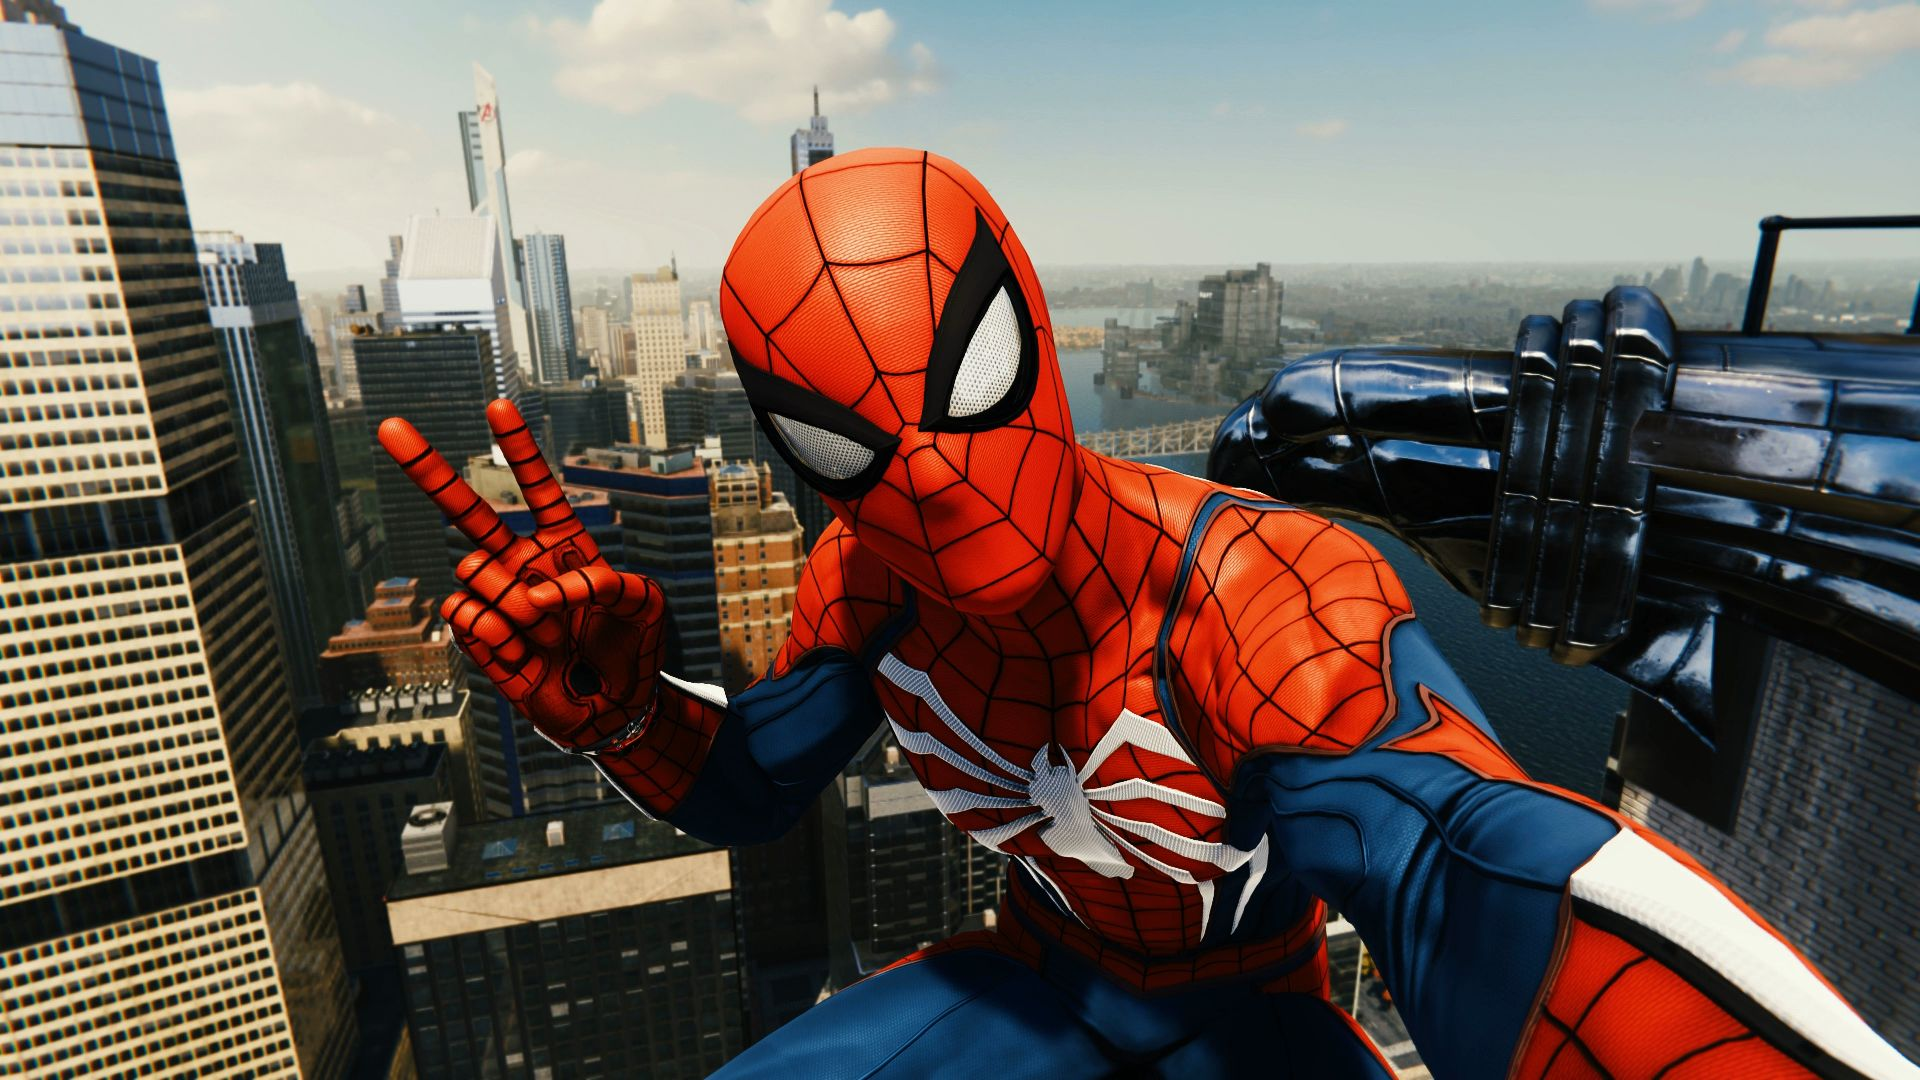 Spider-Man Remastered, mettere PlayStation 5 in standby la fa crashare